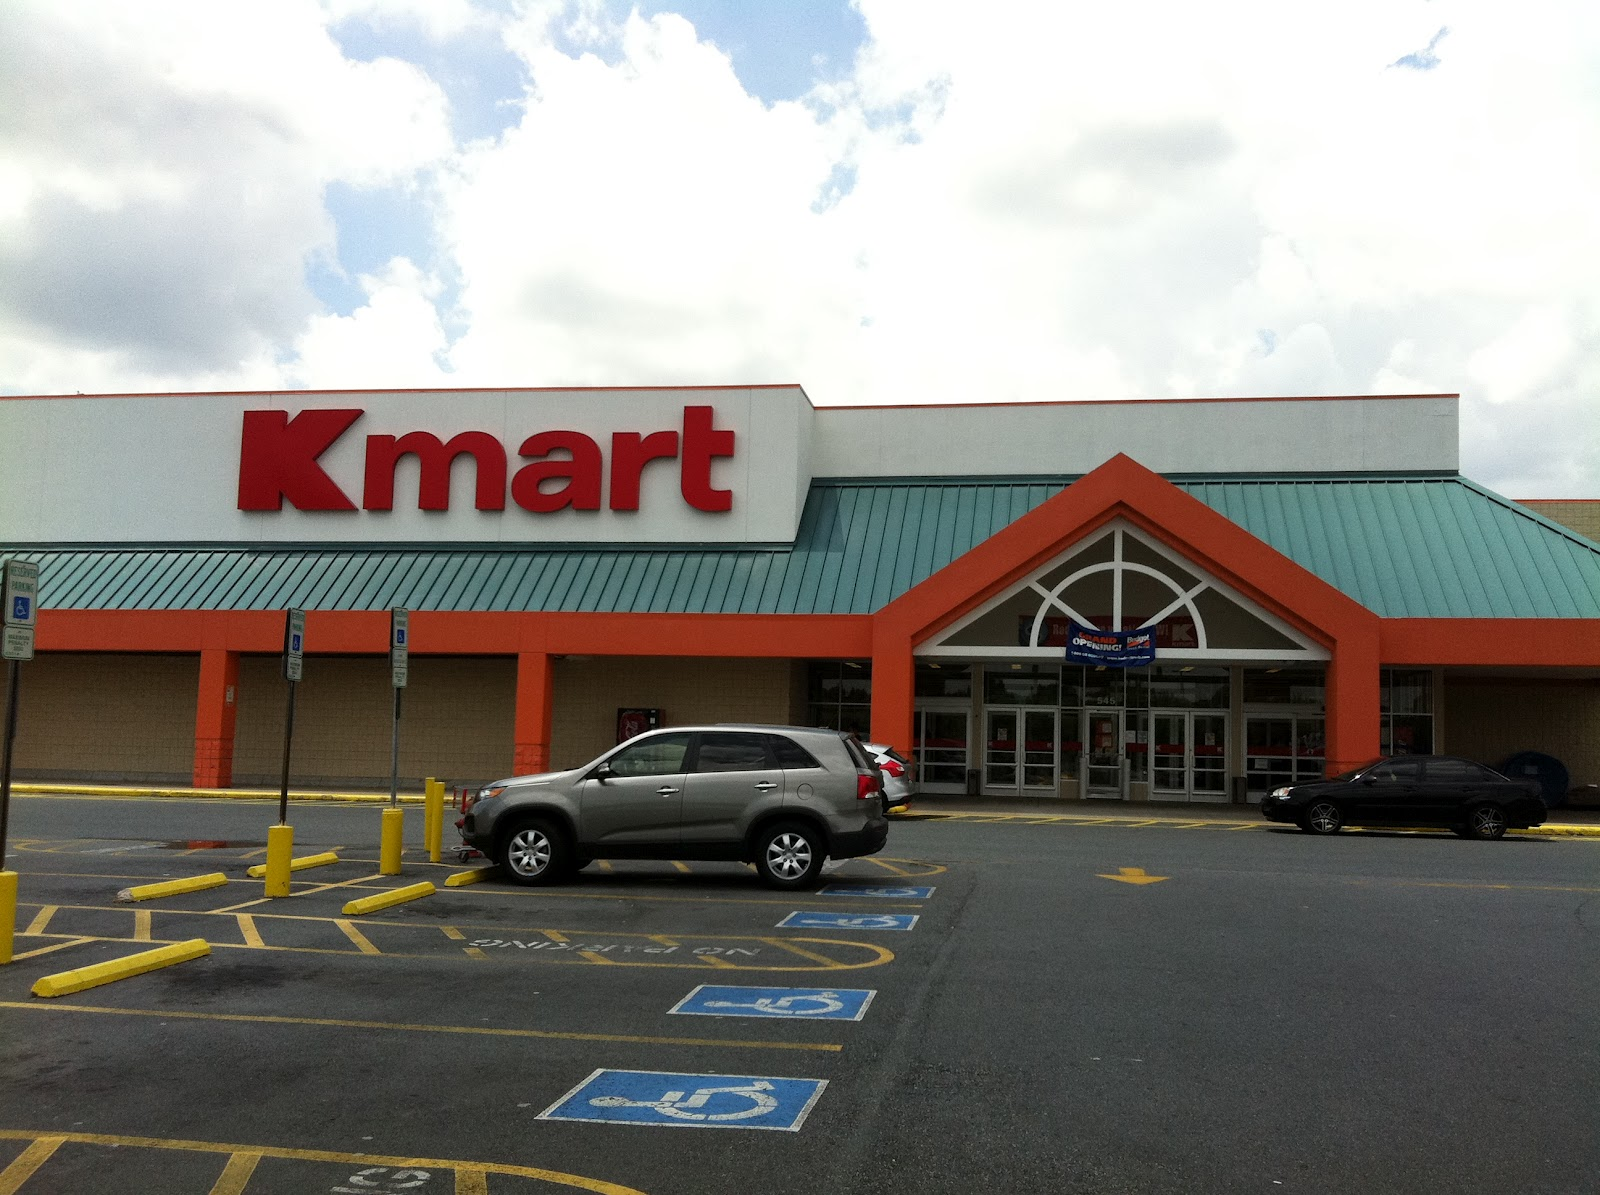 10% off items sold by Kmart with qualifying Sears Card. Offer requires the use of a qualified Sears card. Offer available on items sold by Kmart only. In-store offers may vary.